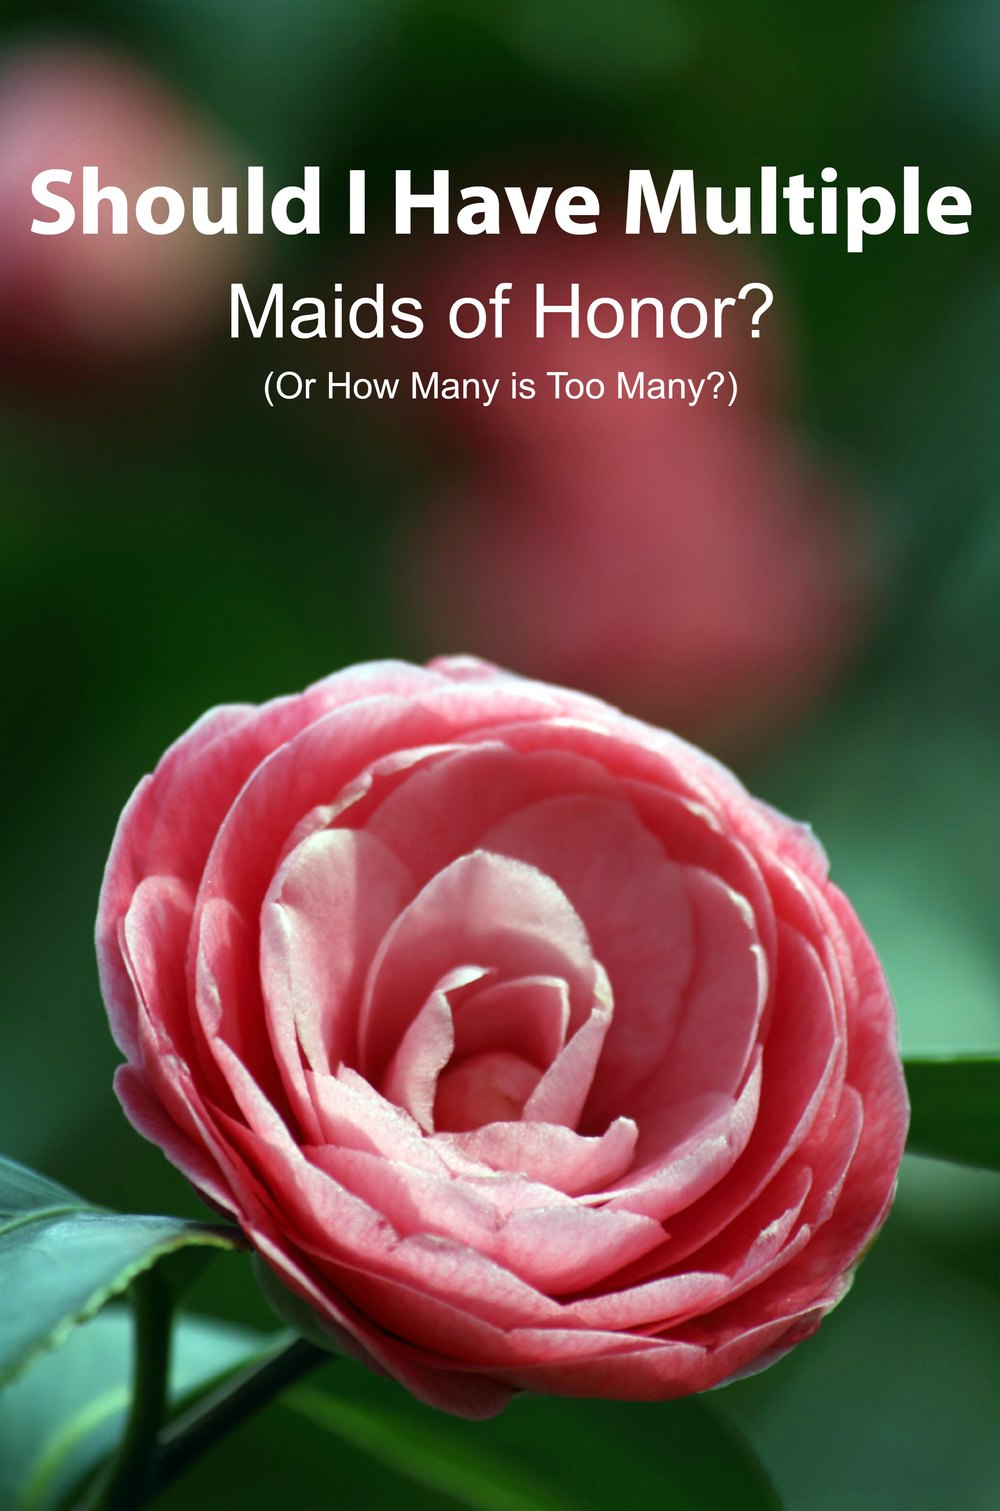 Should You Have Multiple Maids of Honor? How Many is Too Many? - Paper Swallow Events #wedding #etiquette